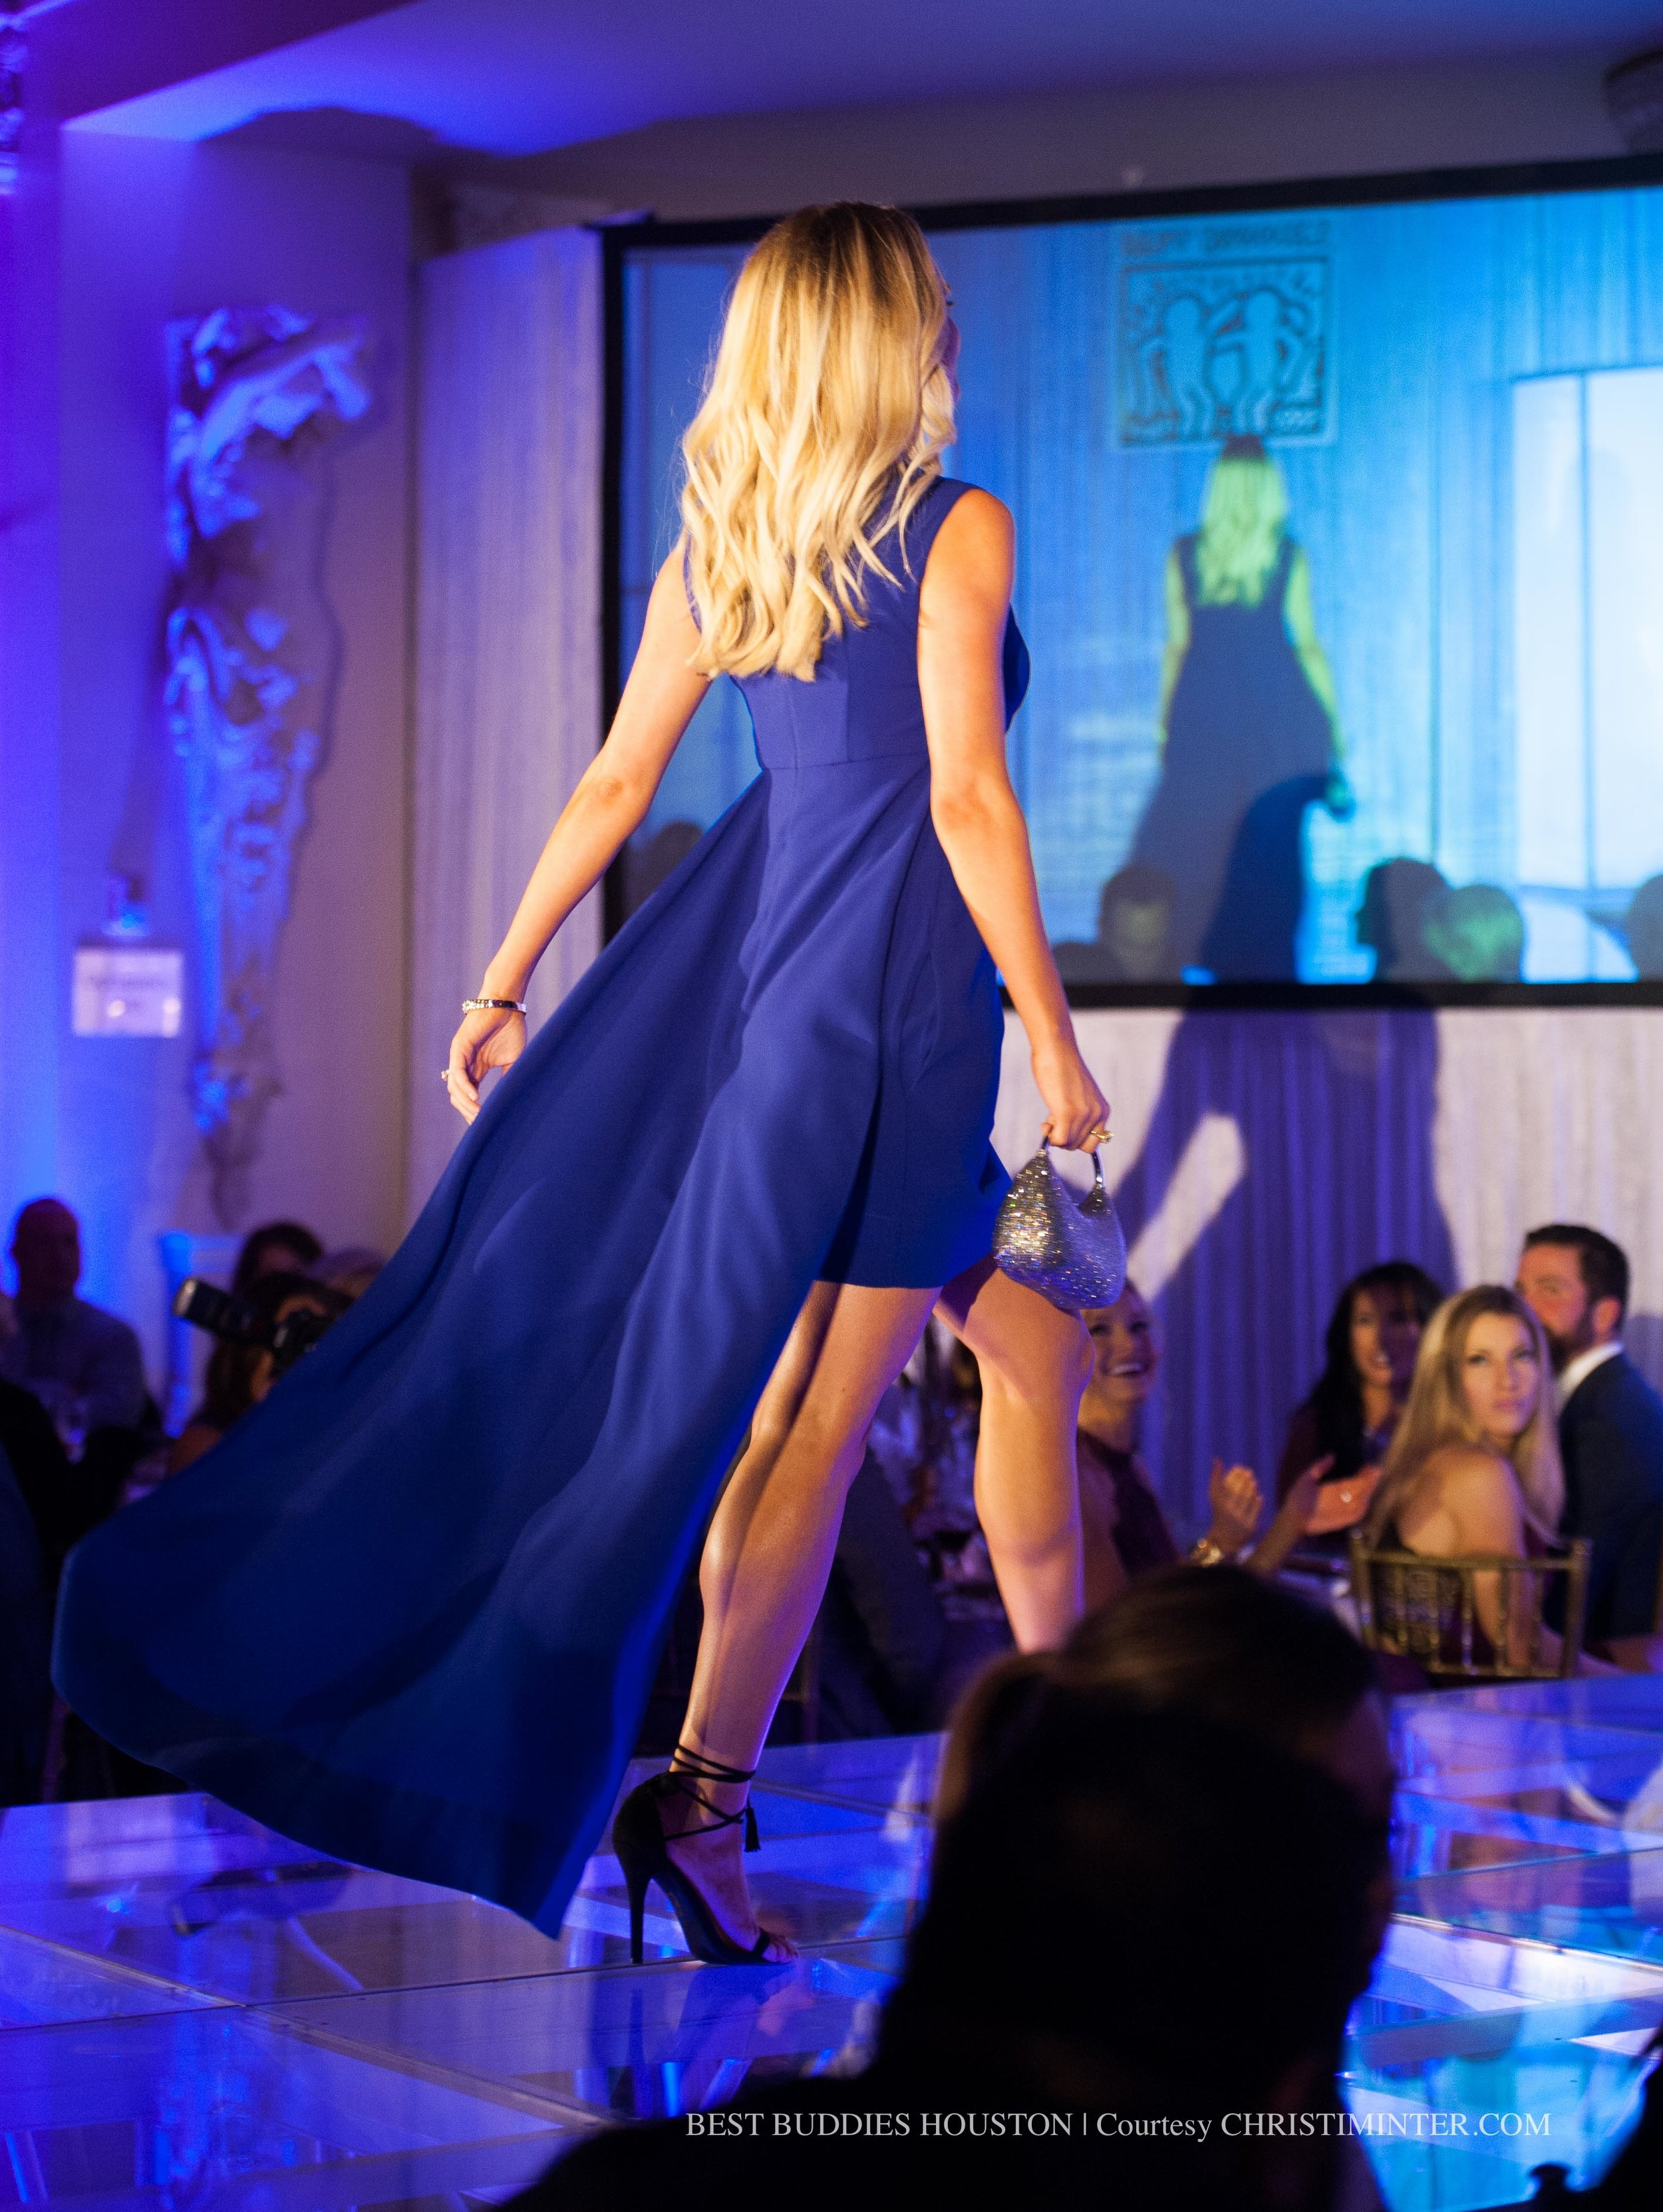 DSC_1276christiminter+fashion+event+photography.jpg